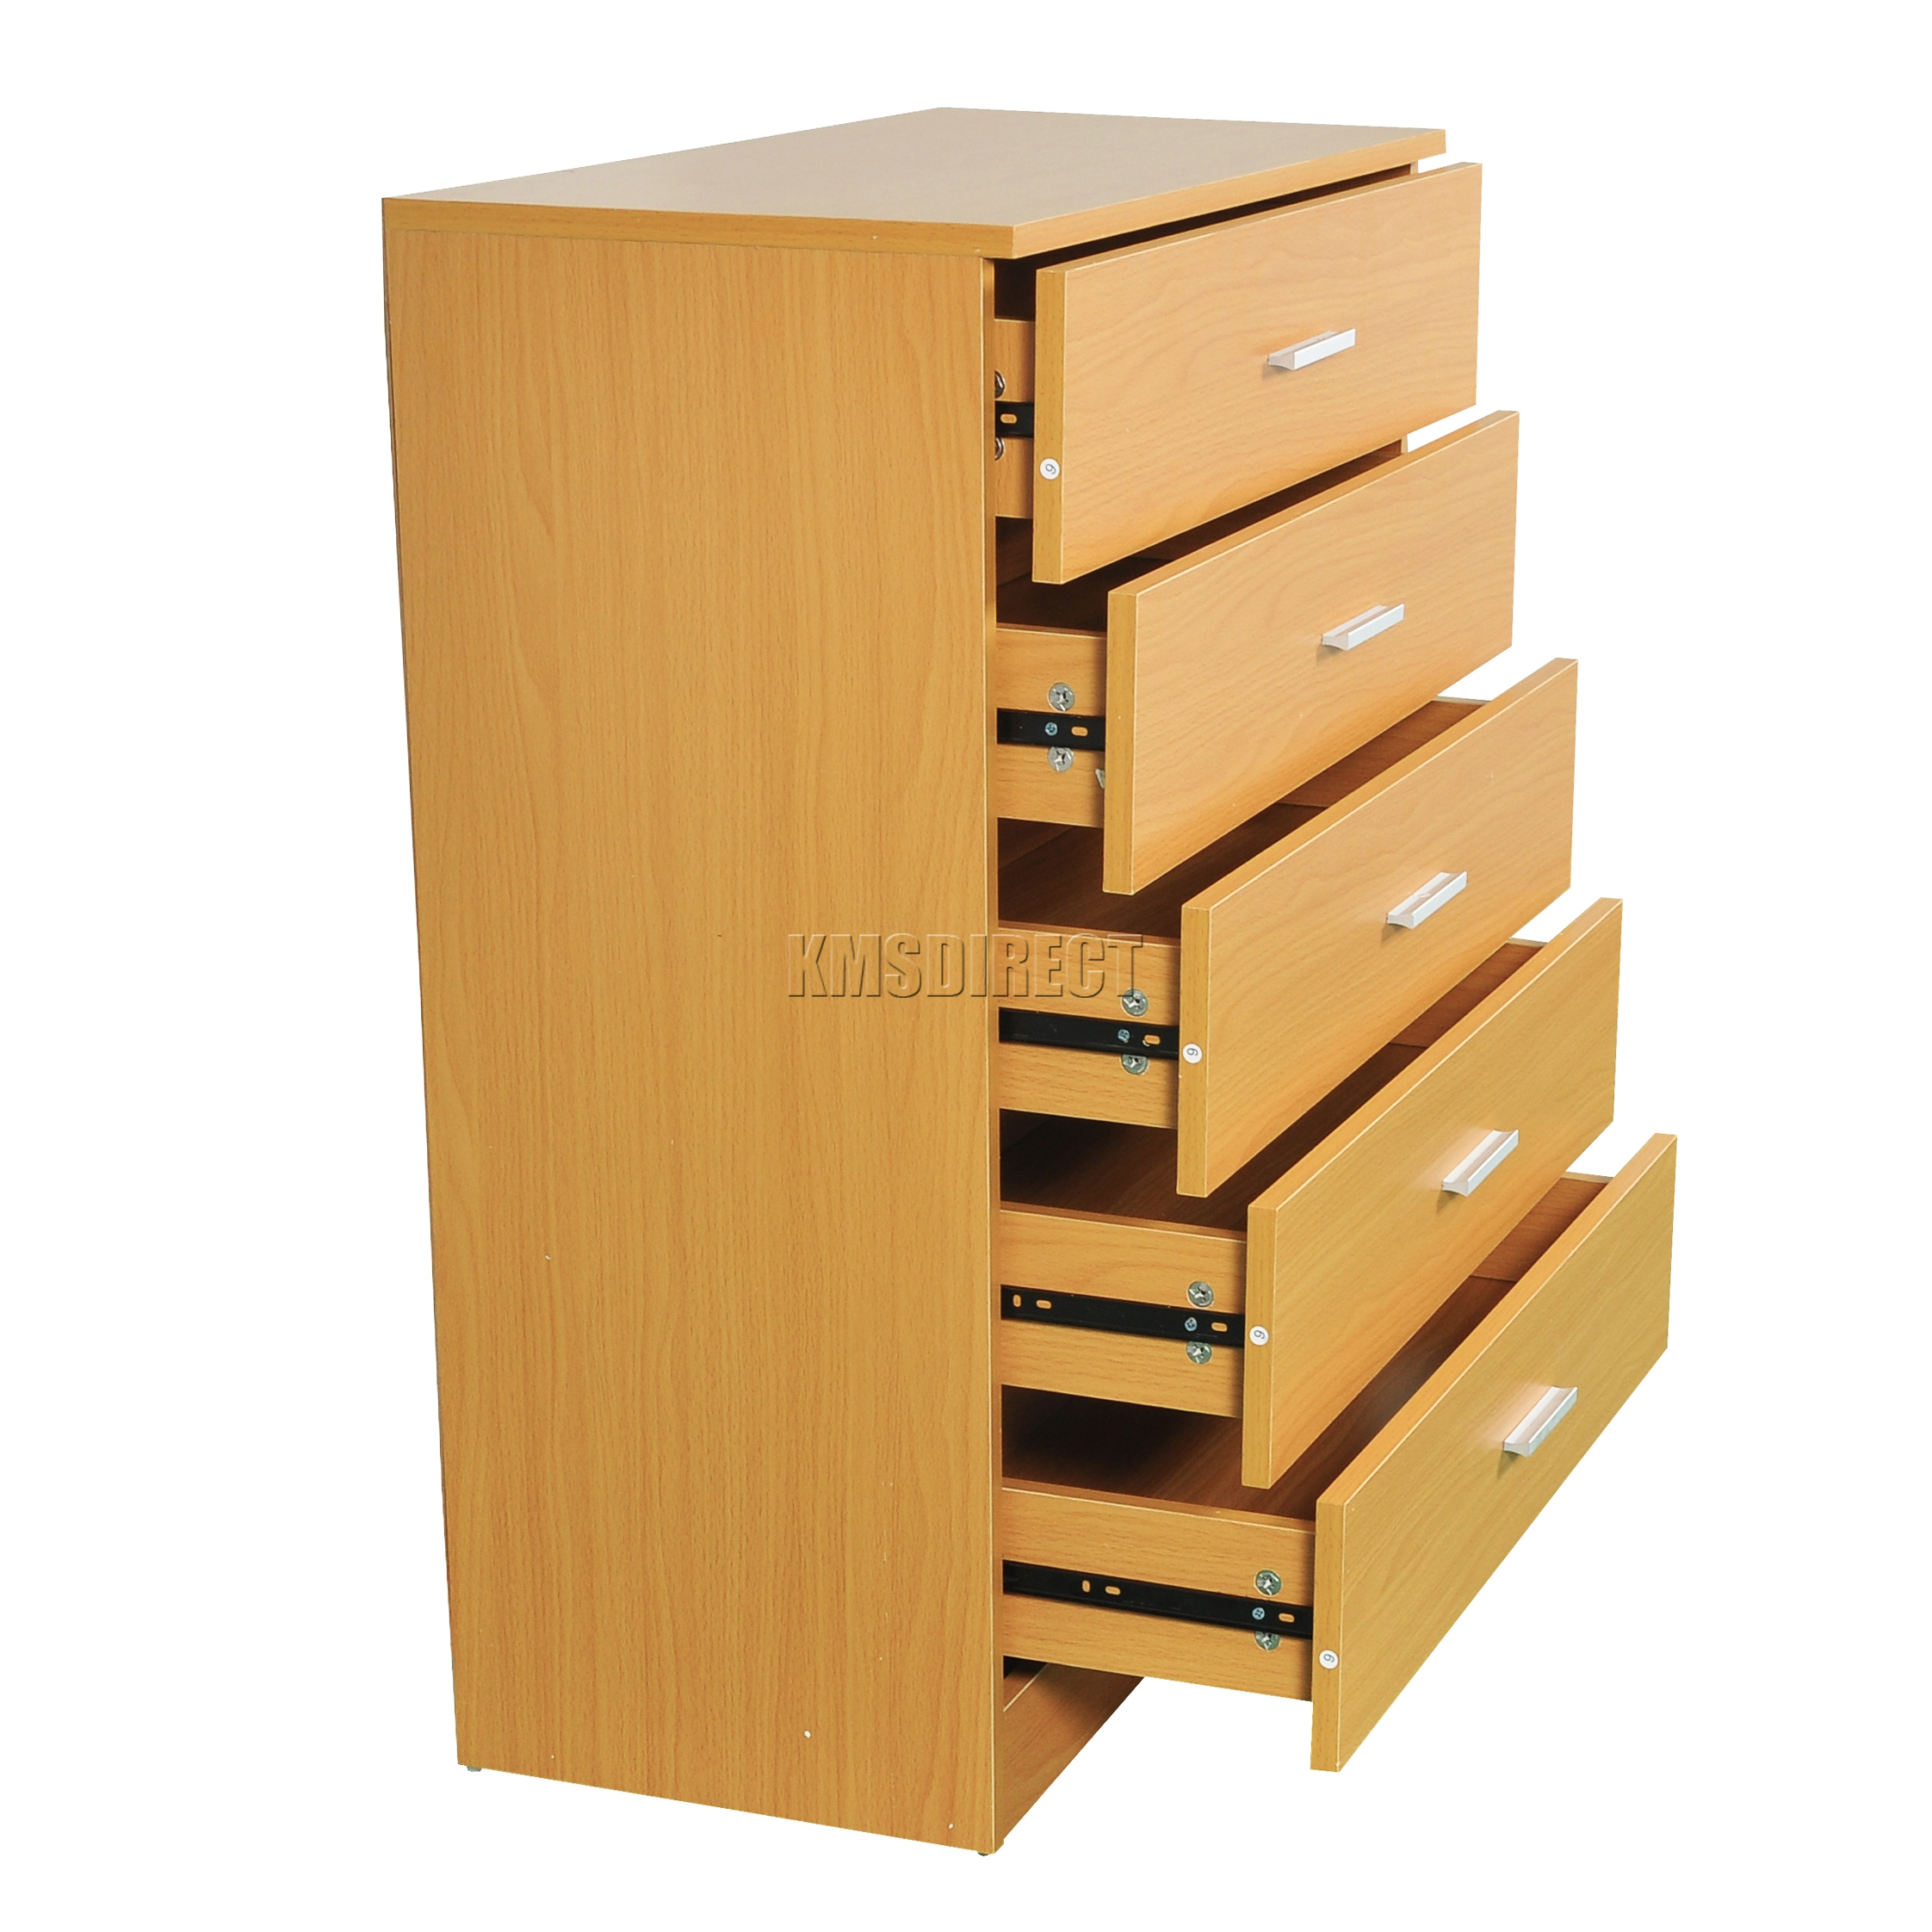 Bedroom Drawer Organizer: FoxHunter Wooden Cabinet With 5 Drawer Bedroom Storage